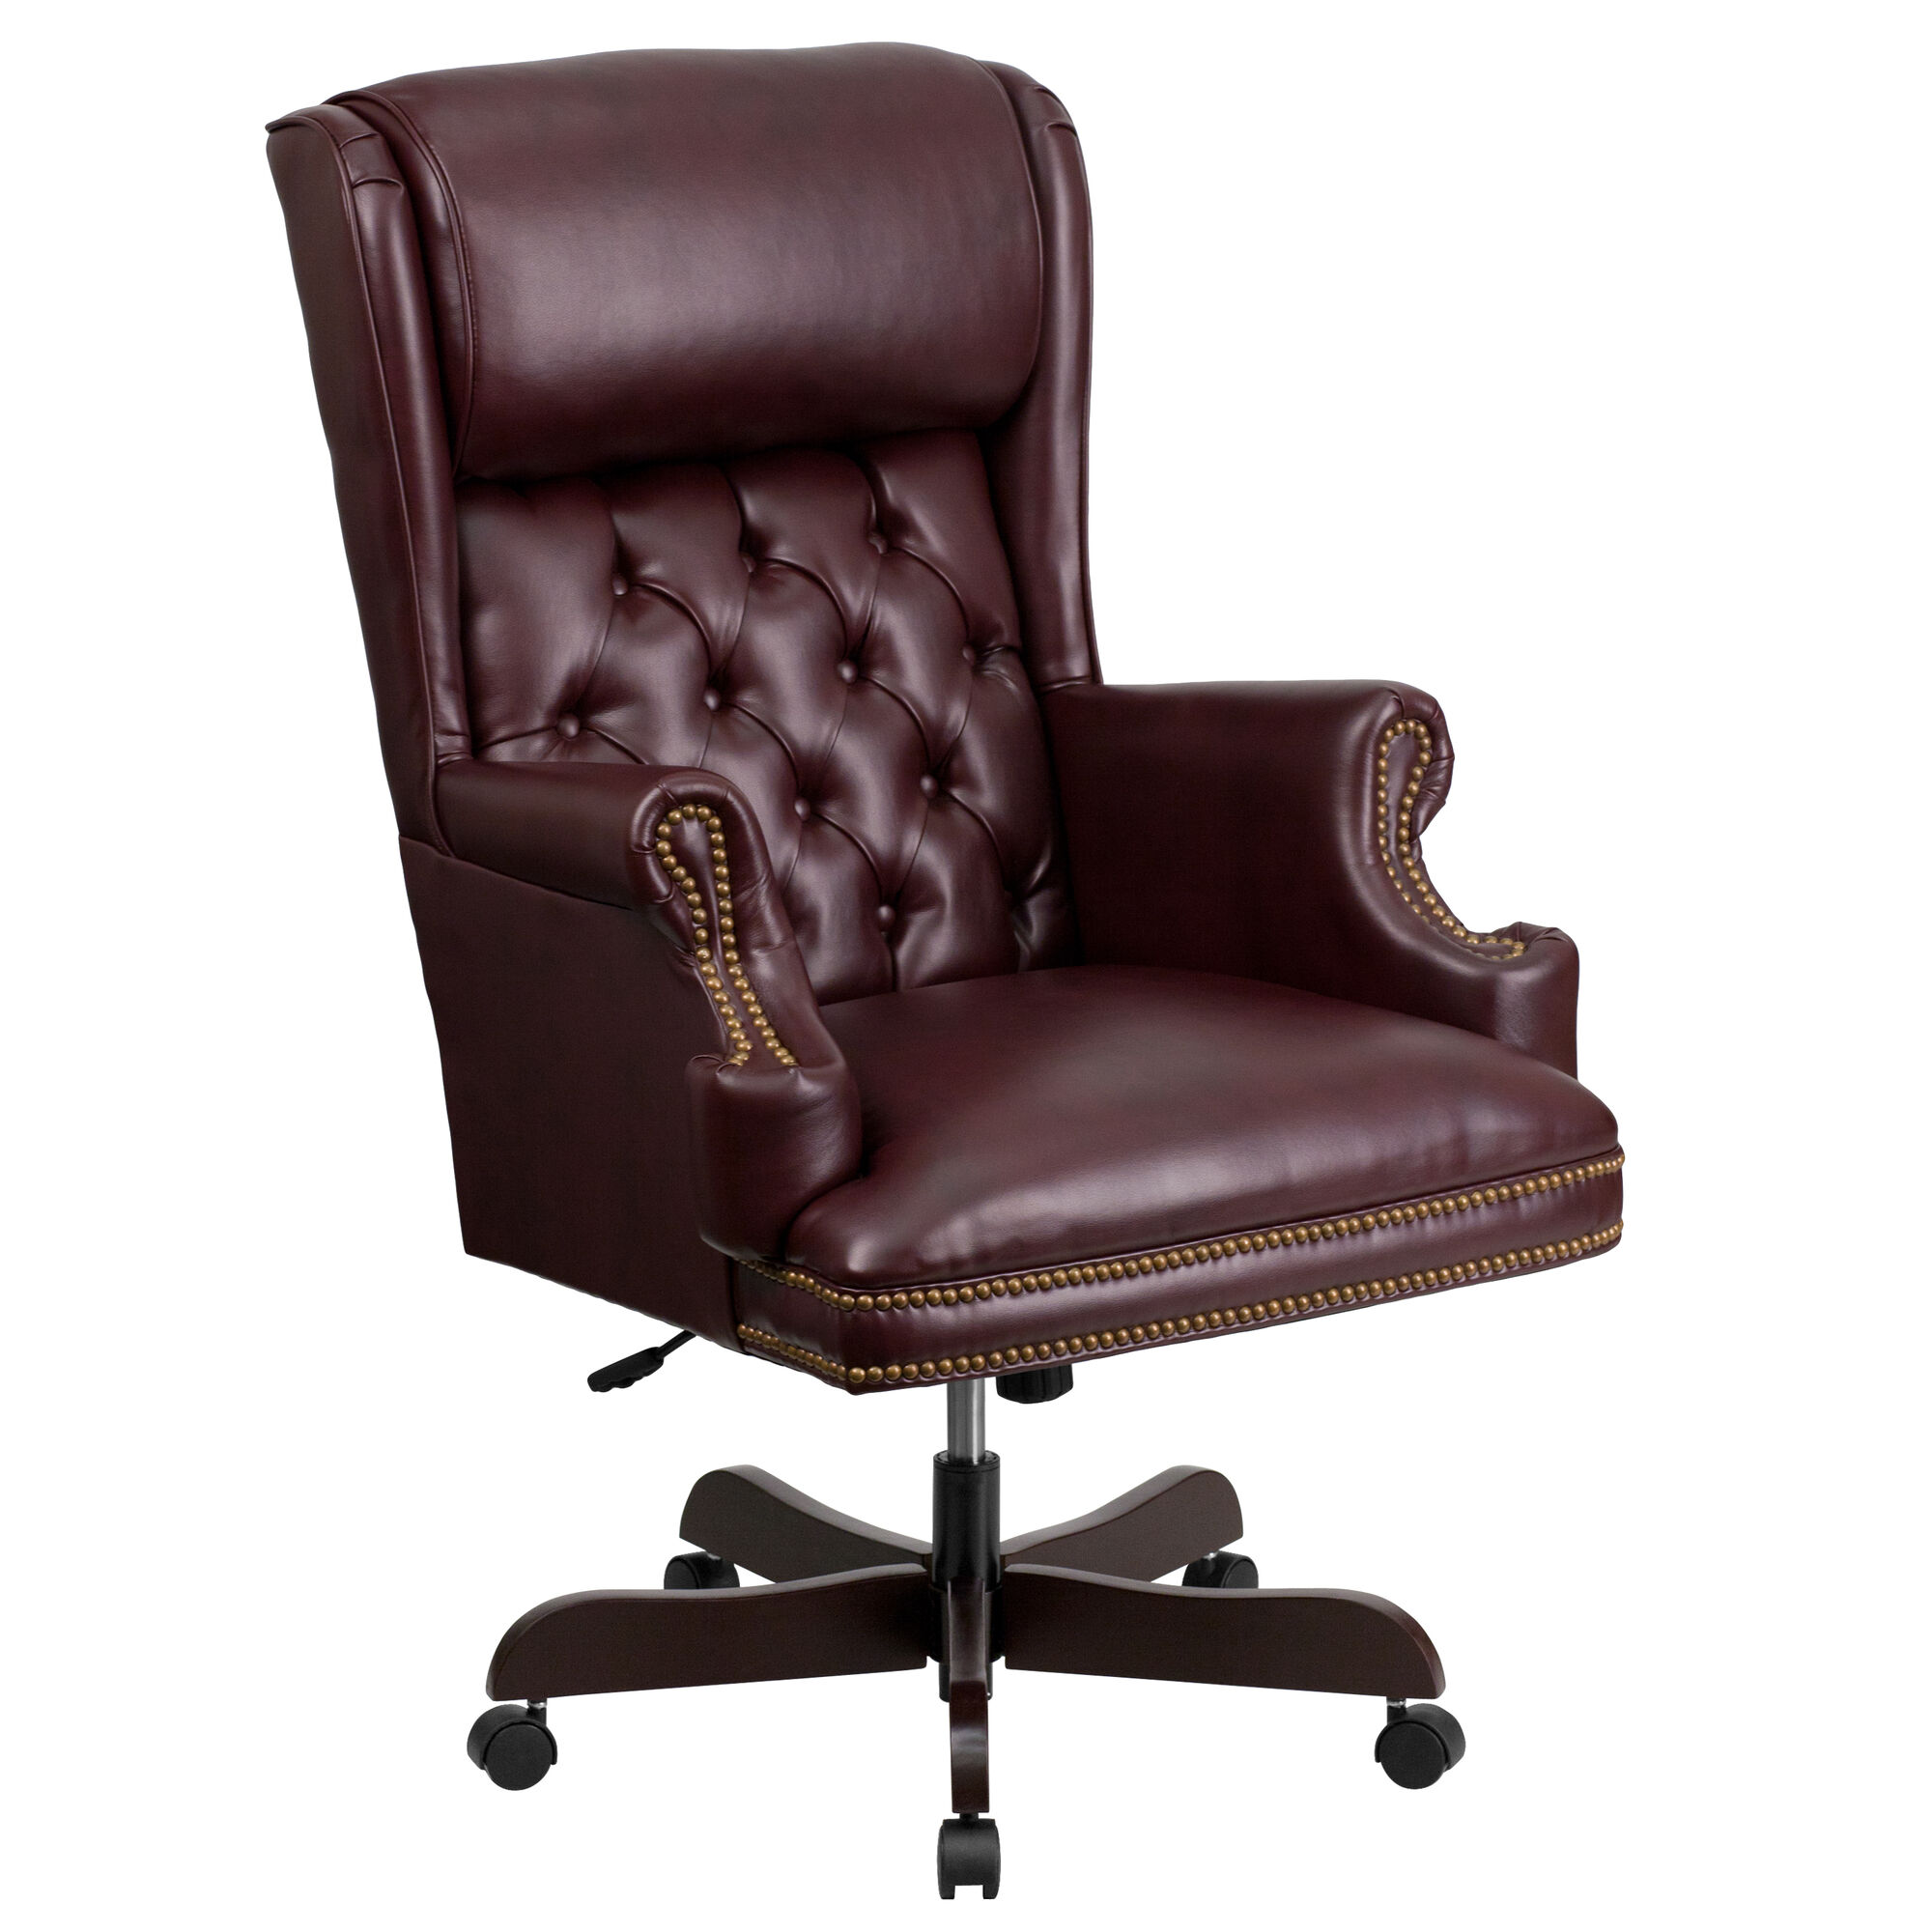 Fabulous High Back Traditional Tufted Burgundy Leather Executive Ergonomic Office Chair With Oversized Headrest Arms Spiritservingveterans Wood Chair Design Ideas Spiritservingveteransorg